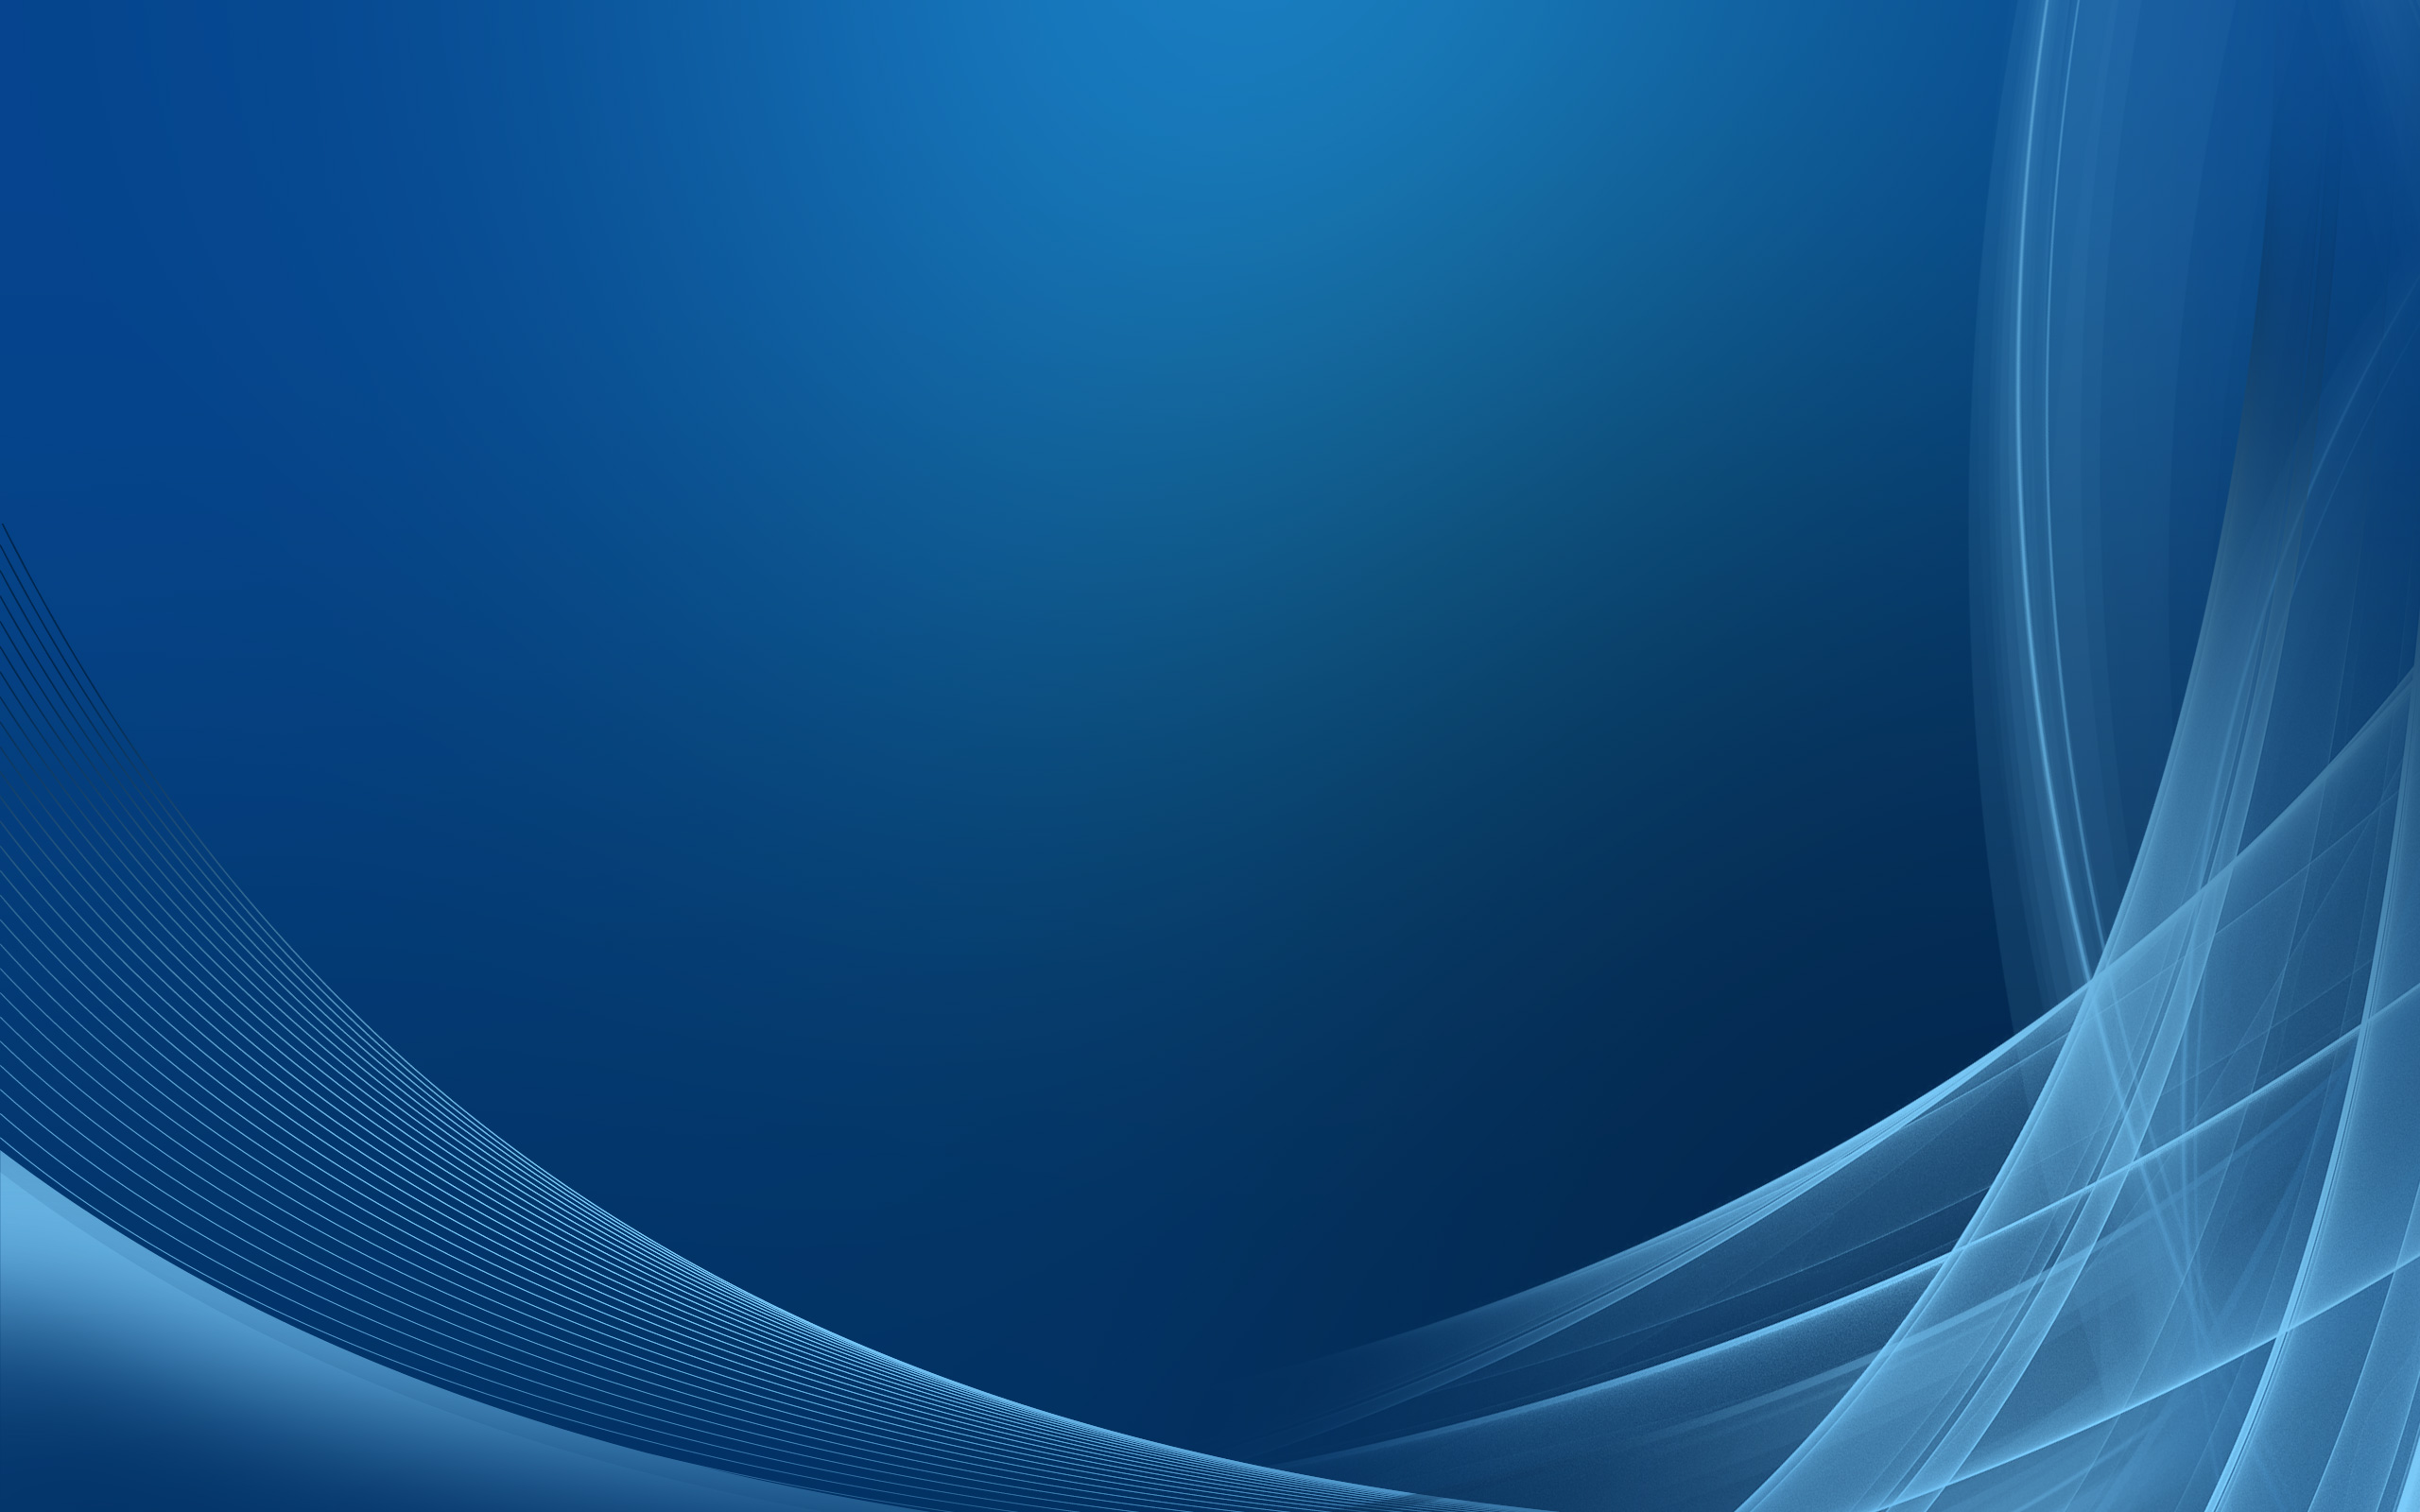 Blue Abstract Wallpaper HD - WallpaperSafari